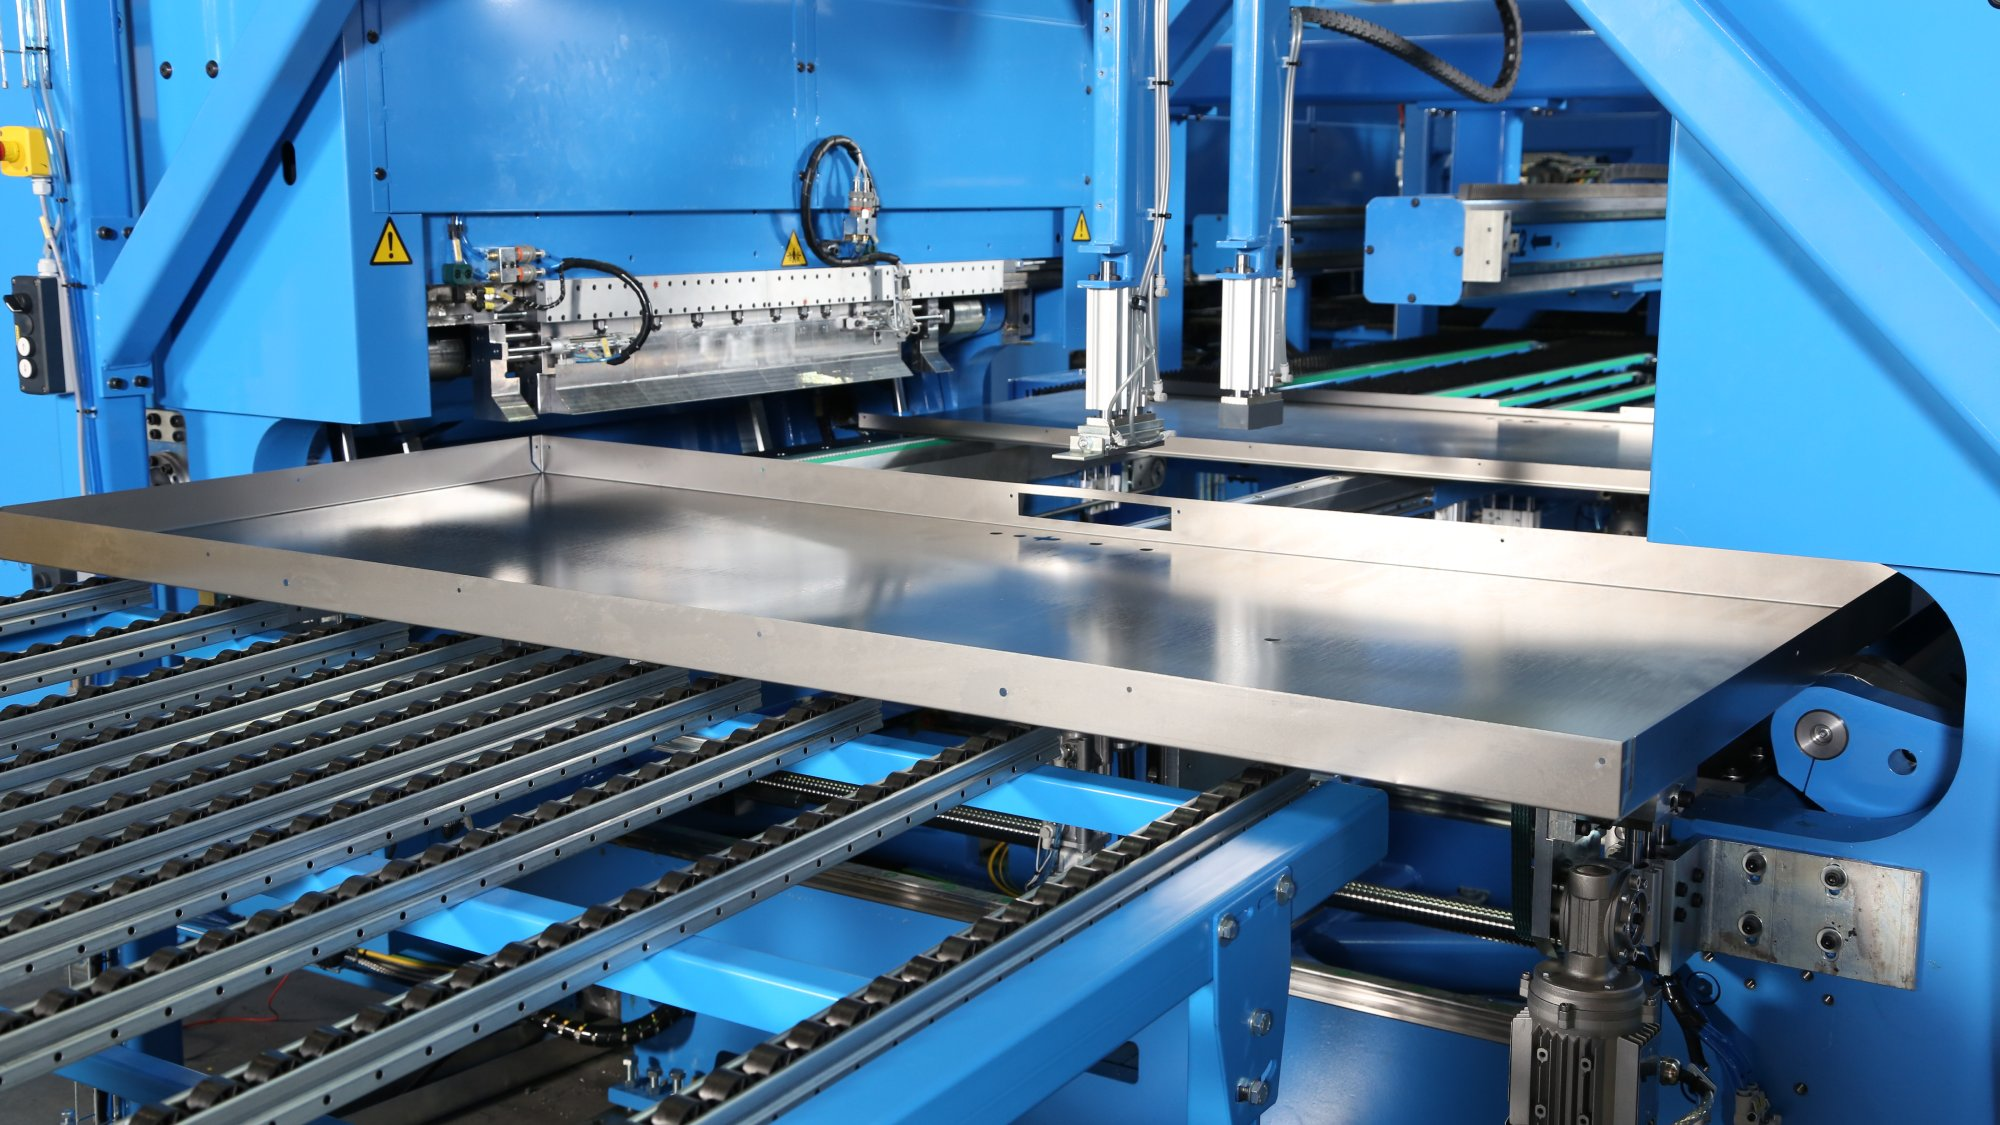 From a thin sheet to ready parts, Pivatic's machines employ multiple functions according to customer needs.